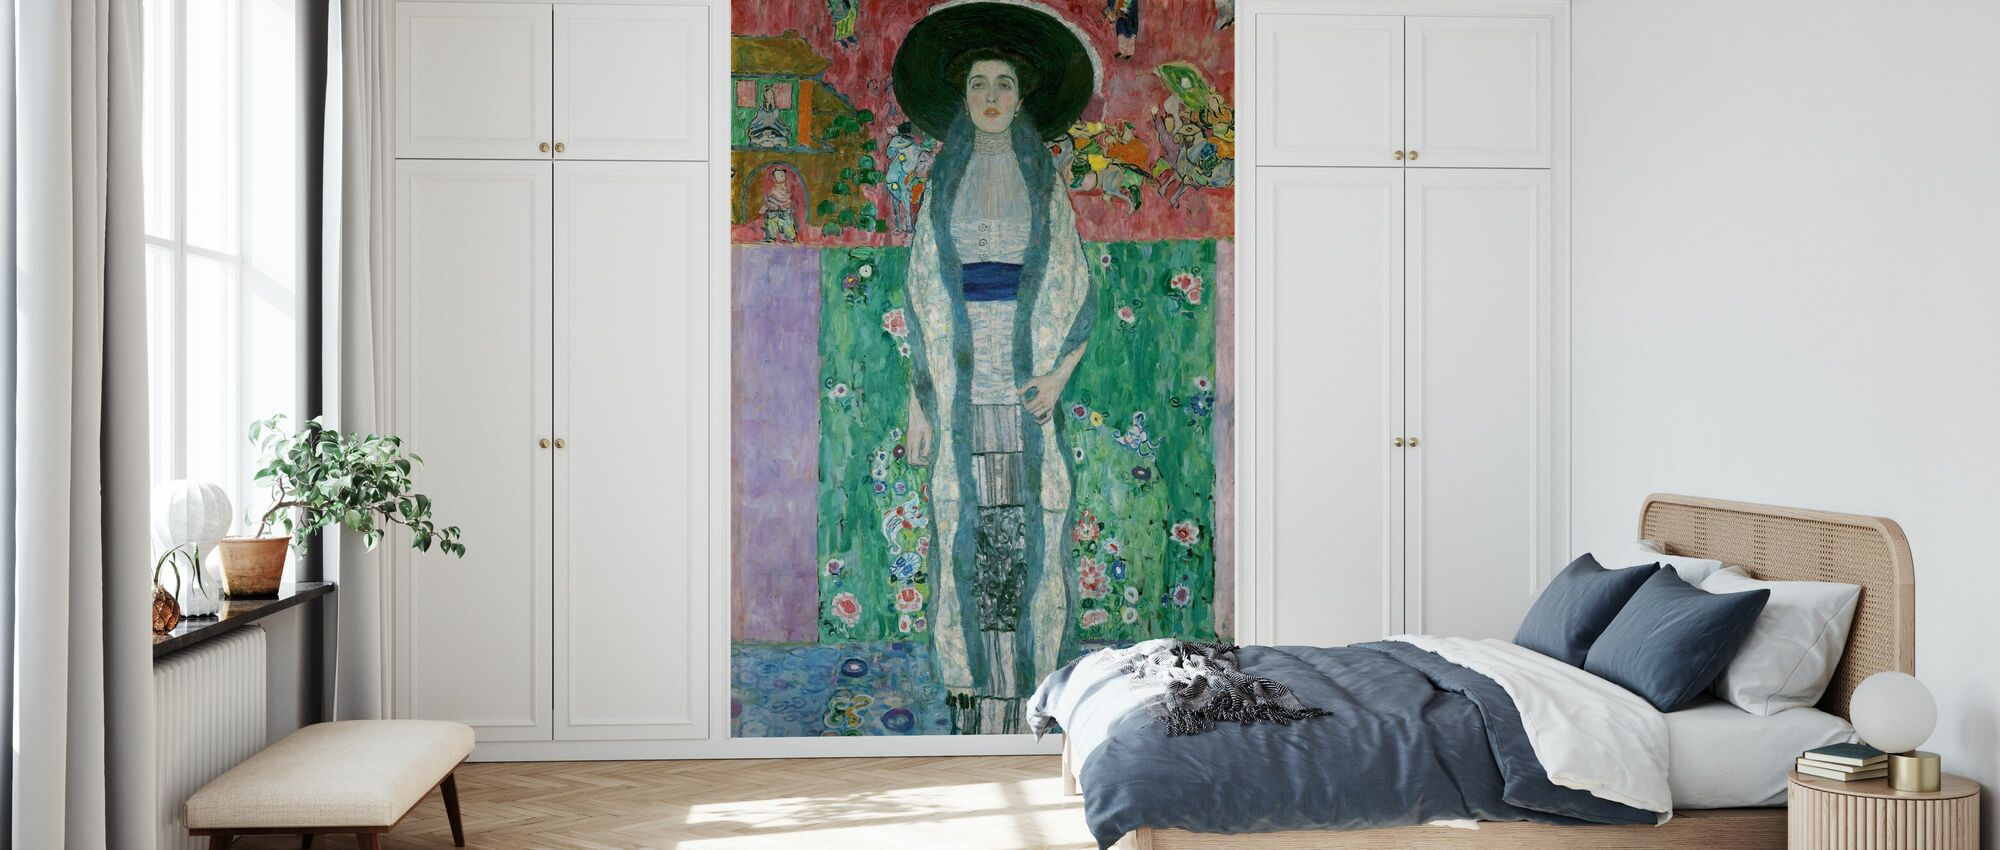 Portrait of Adele Bloch-Bauer - Gustav Klimt - Wallpaper - Bedroom